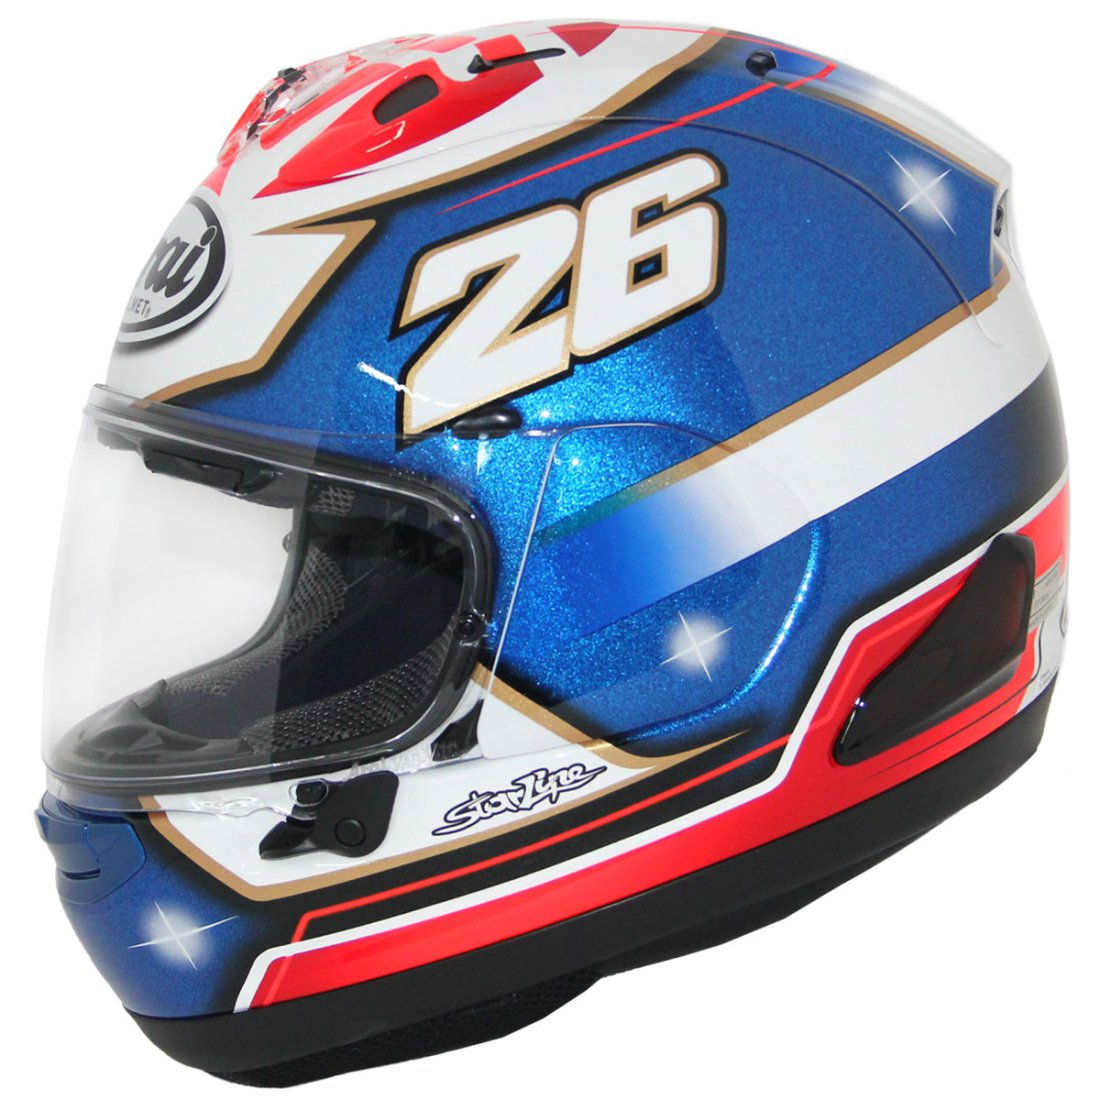 arai rx 7v pedrosa samurai helmet motocard. Black Bedroom Furniture Sets. Home Design Ideas